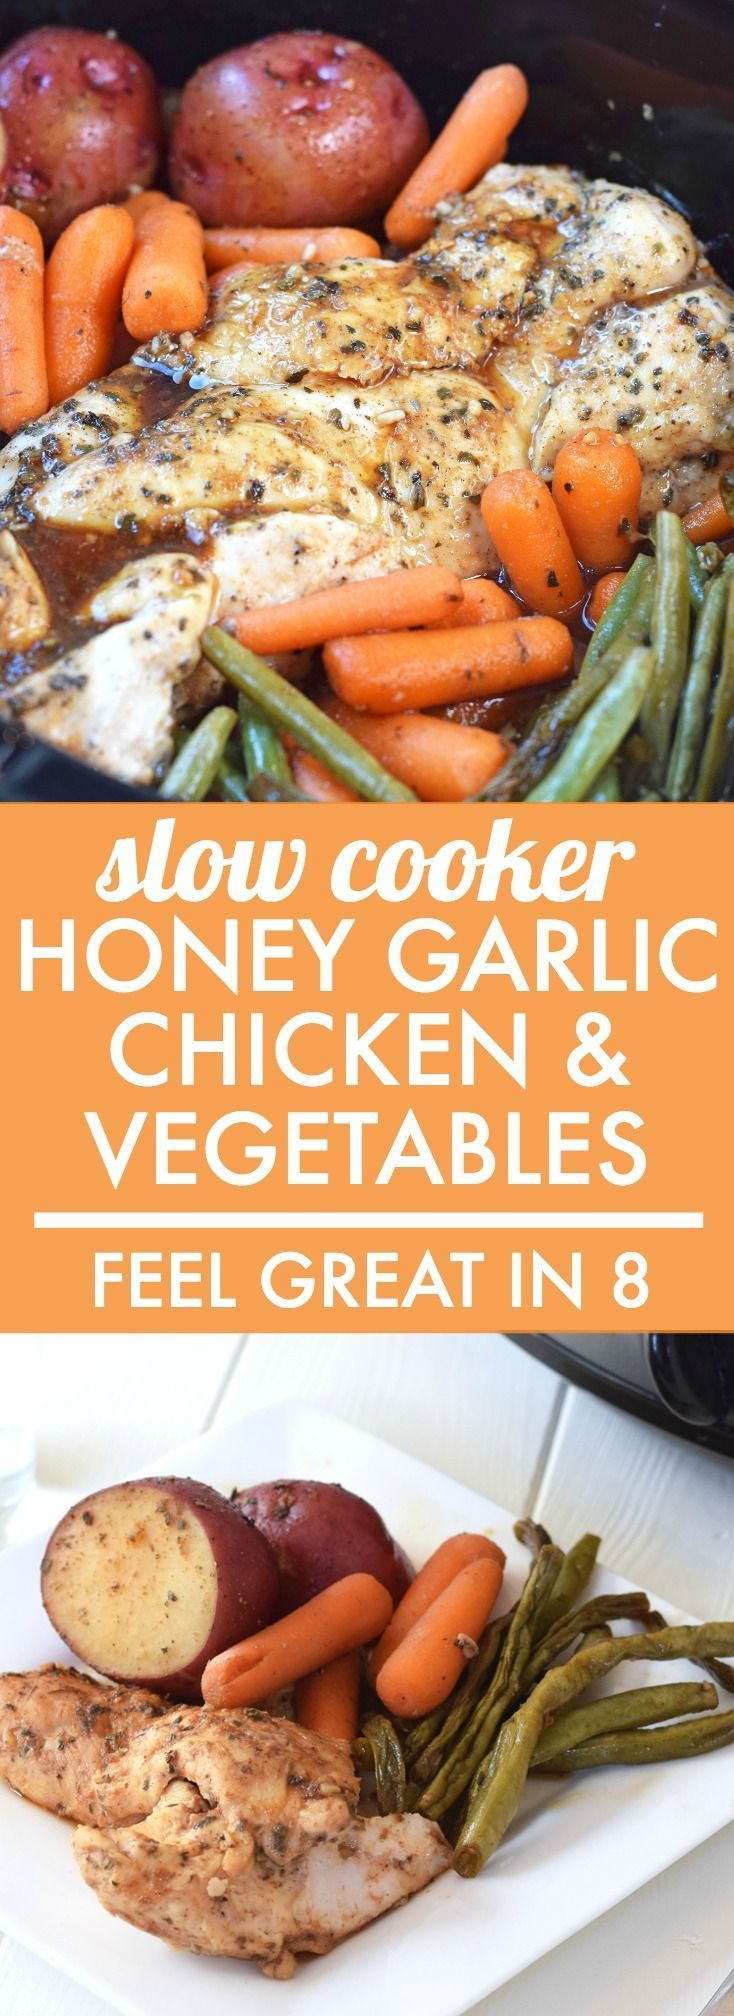 Slow Cooker Honey Garlic Chicken and Vegetables - This is as easy as a healthy dinner gets! Throw all of the real food ingredients into the Crock Pot and you've got a delicious dinner the whole family will love!